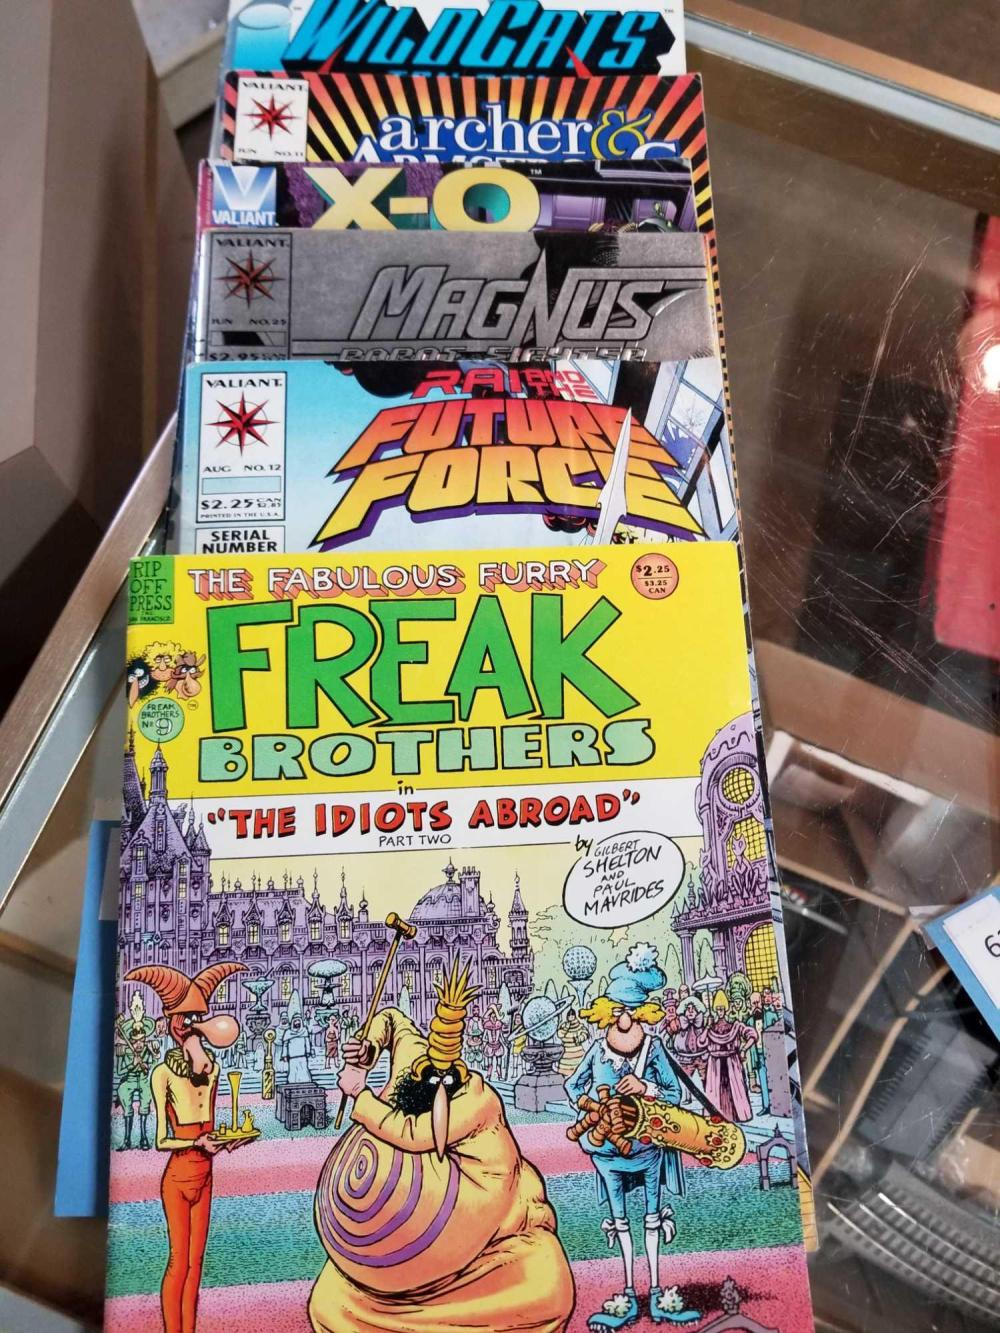 1980'S & 90'S COLLECTIBLE COMIC BOOKS - 6 ITEMS